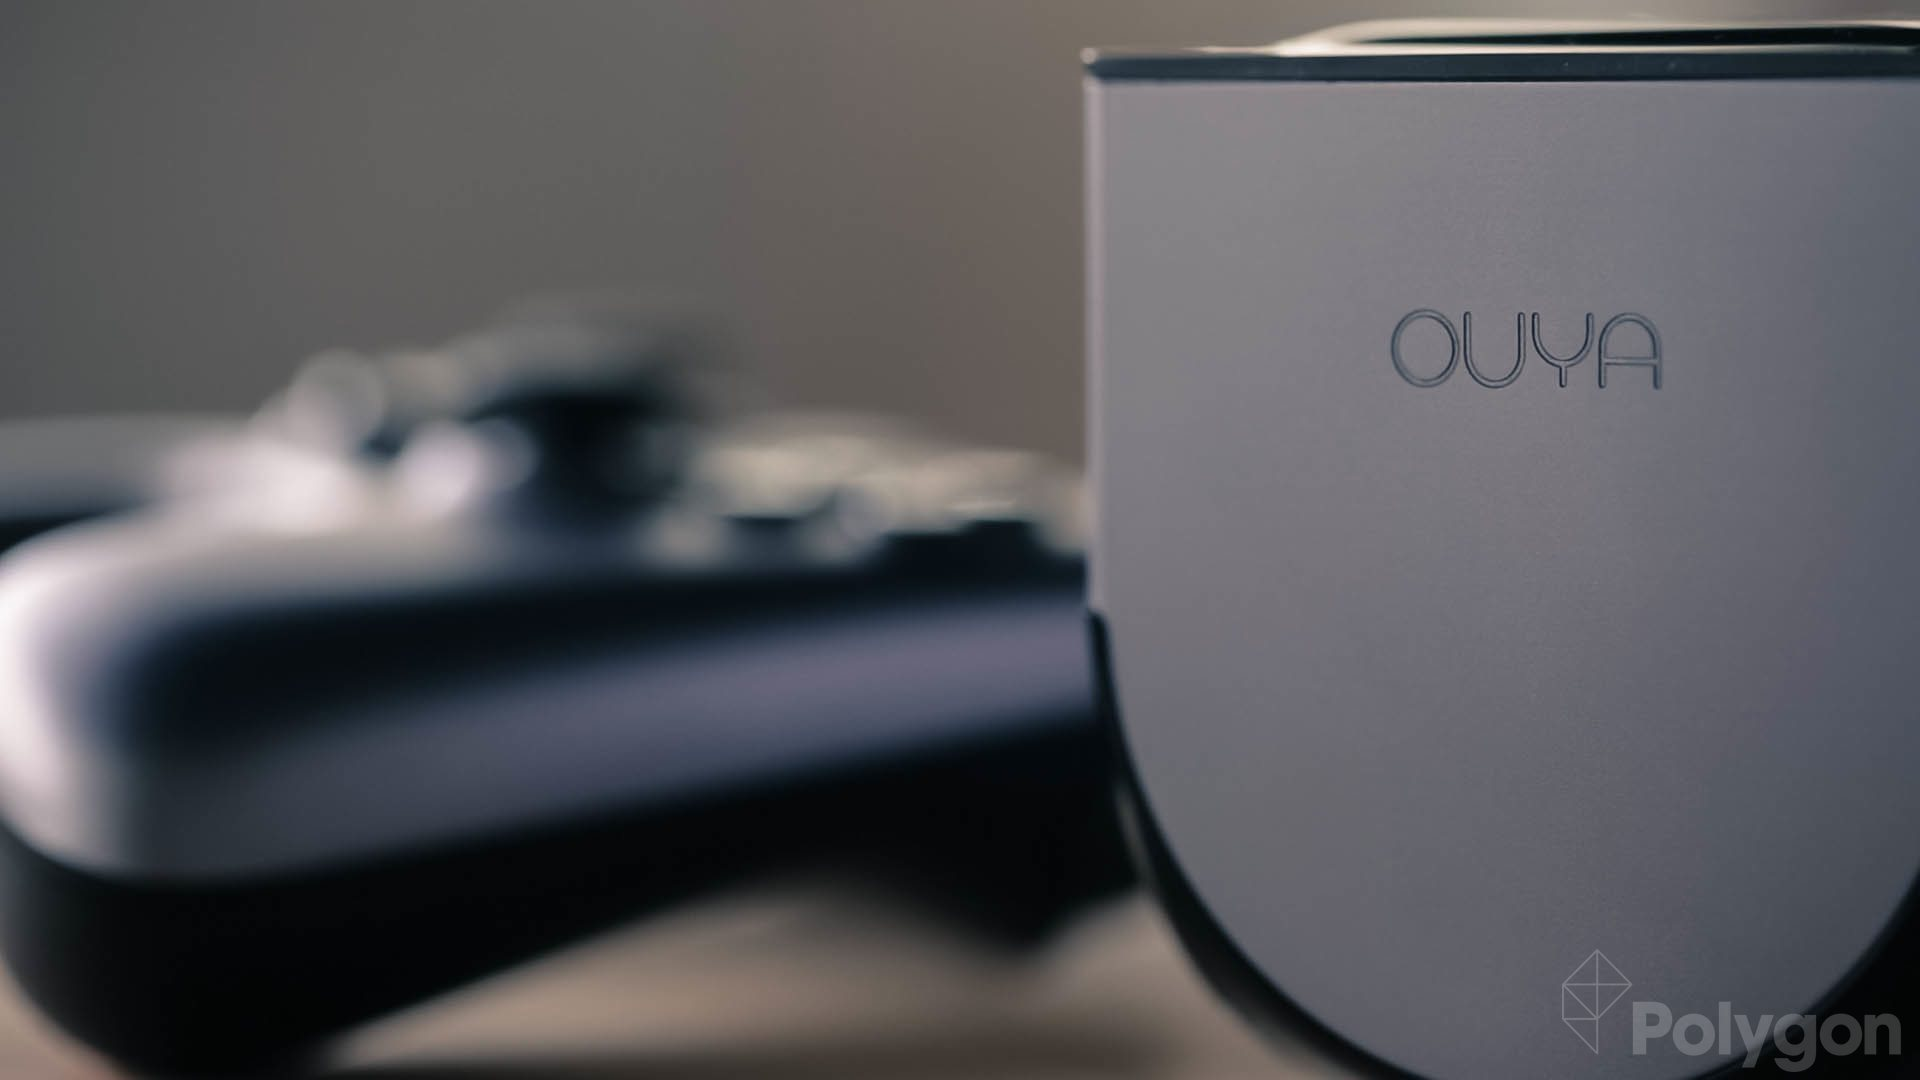 Ouya_photos_001